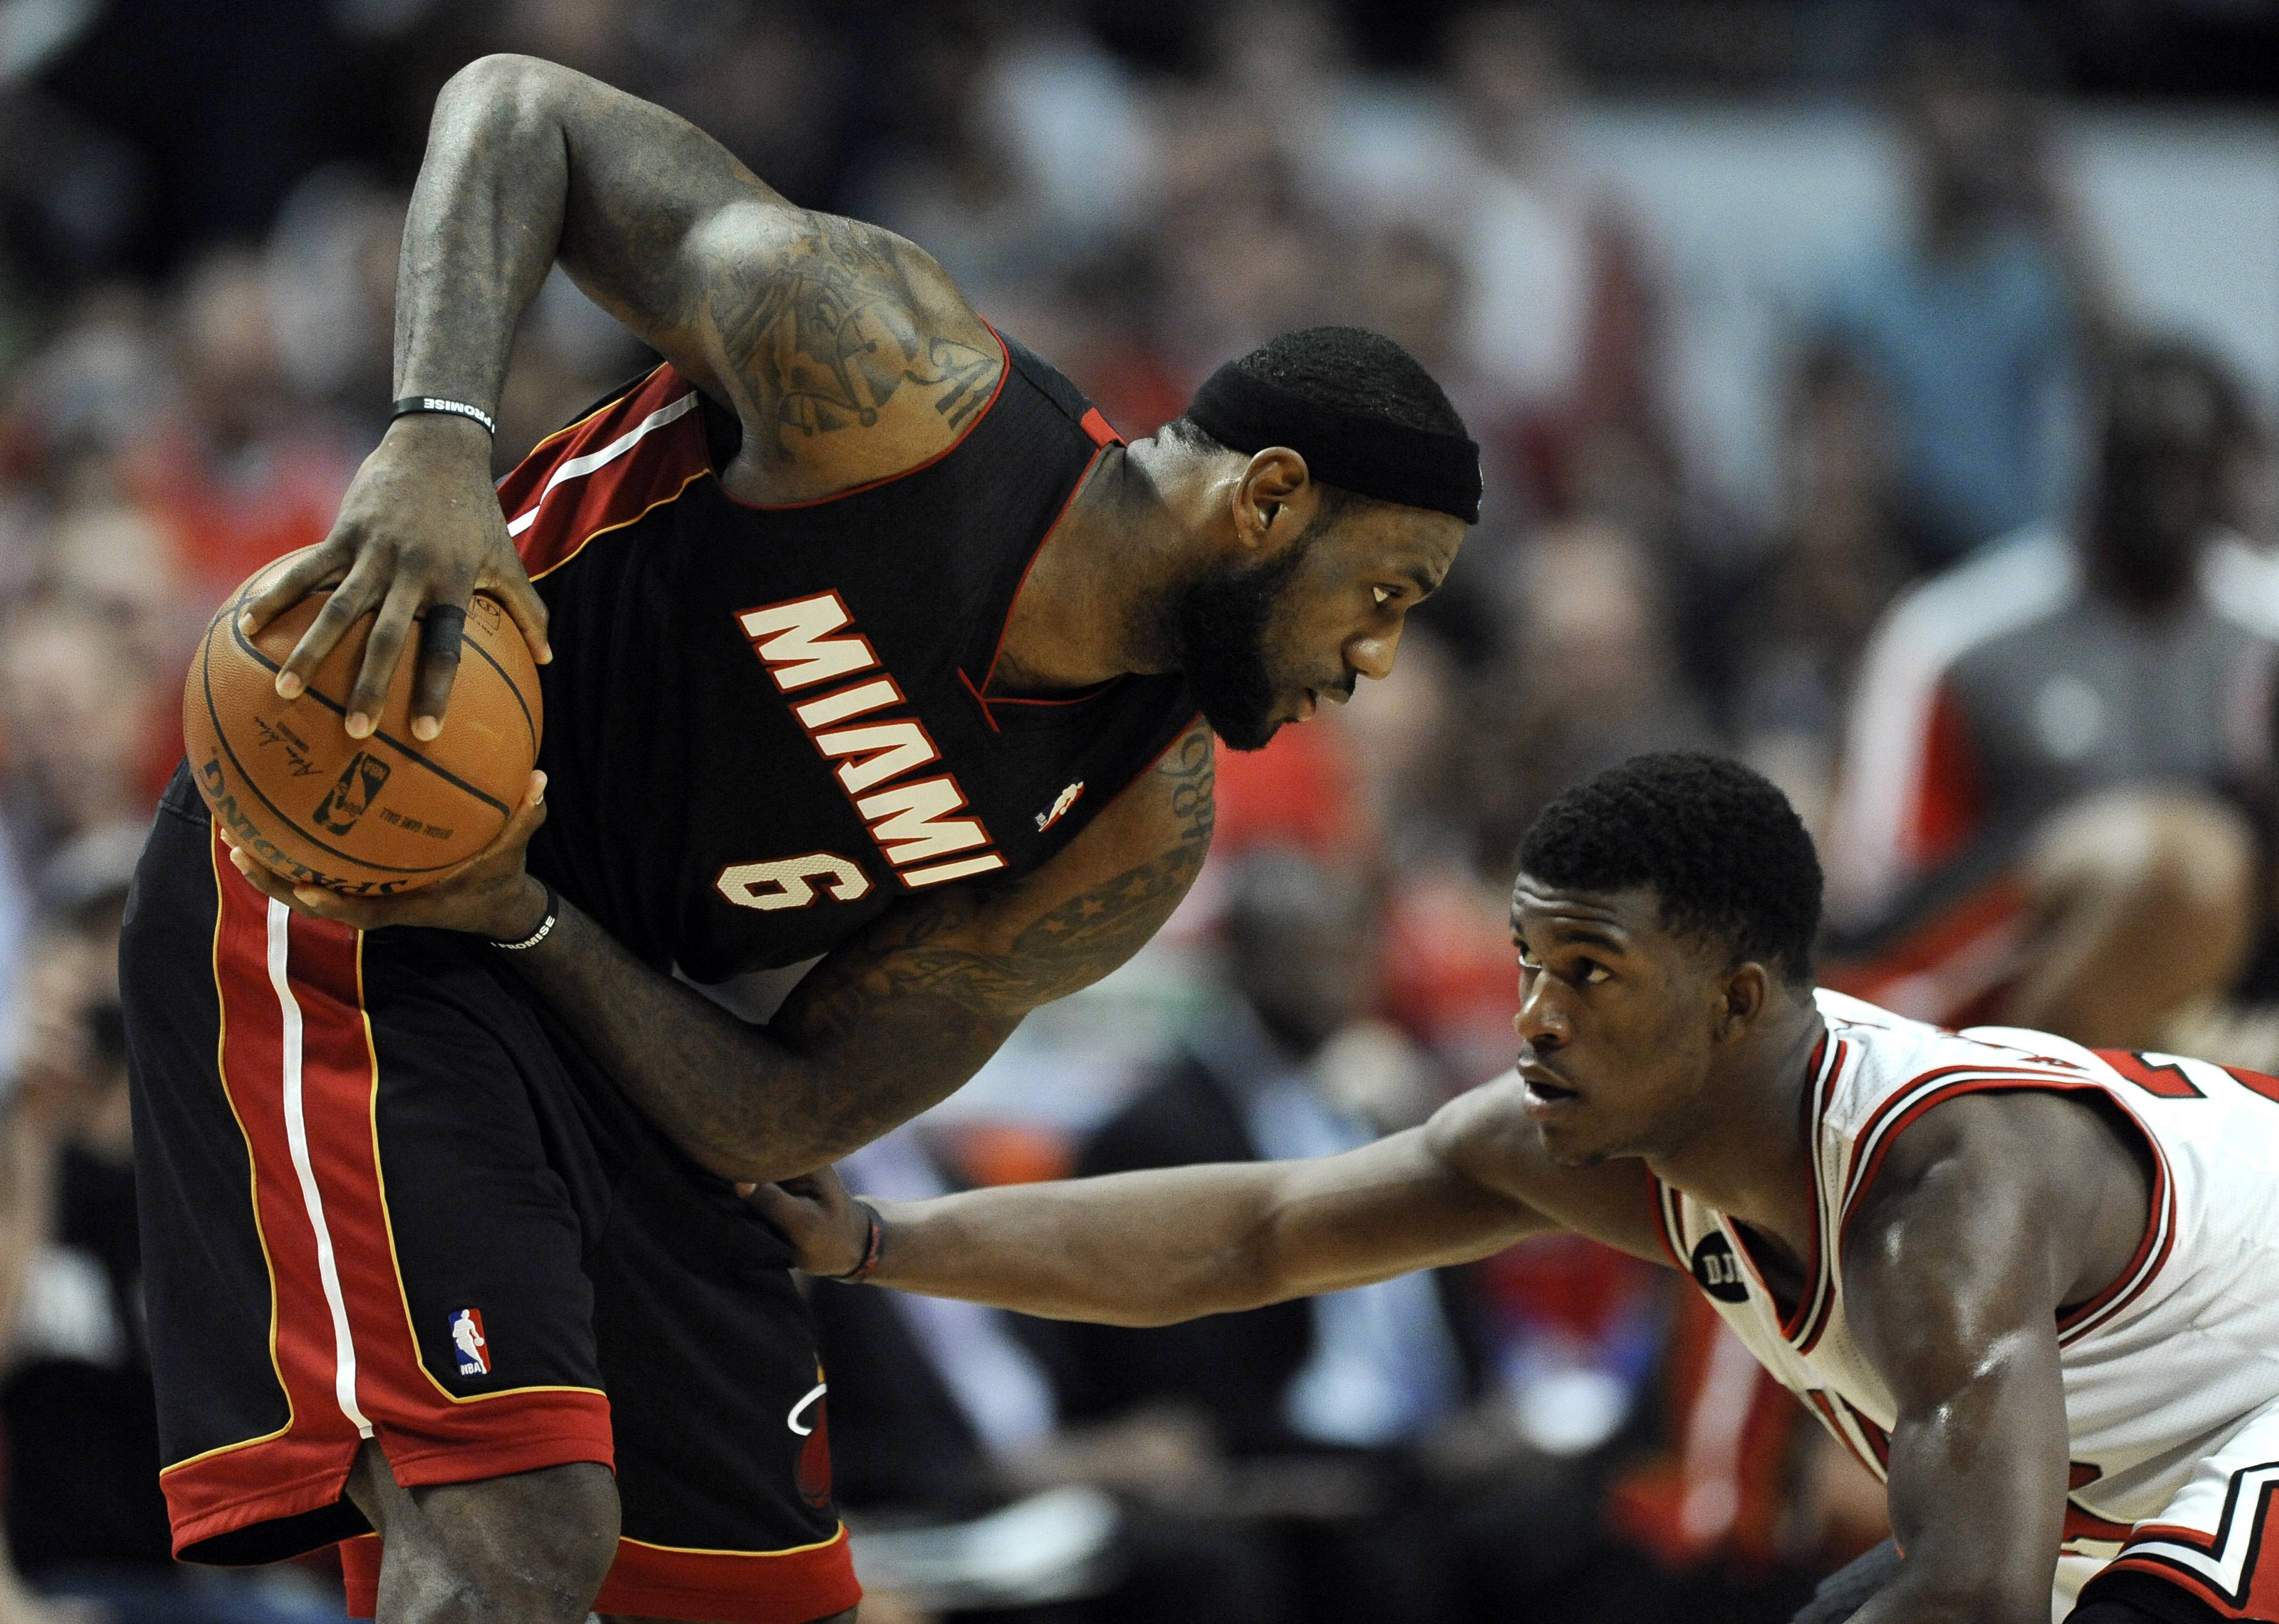 The Bulls' Jimmy Butler played combative defense for all 48 minutes he was on the floor Sunday, holding the Heat's LeBron James to just 17 points on 8-of-23 shooting.